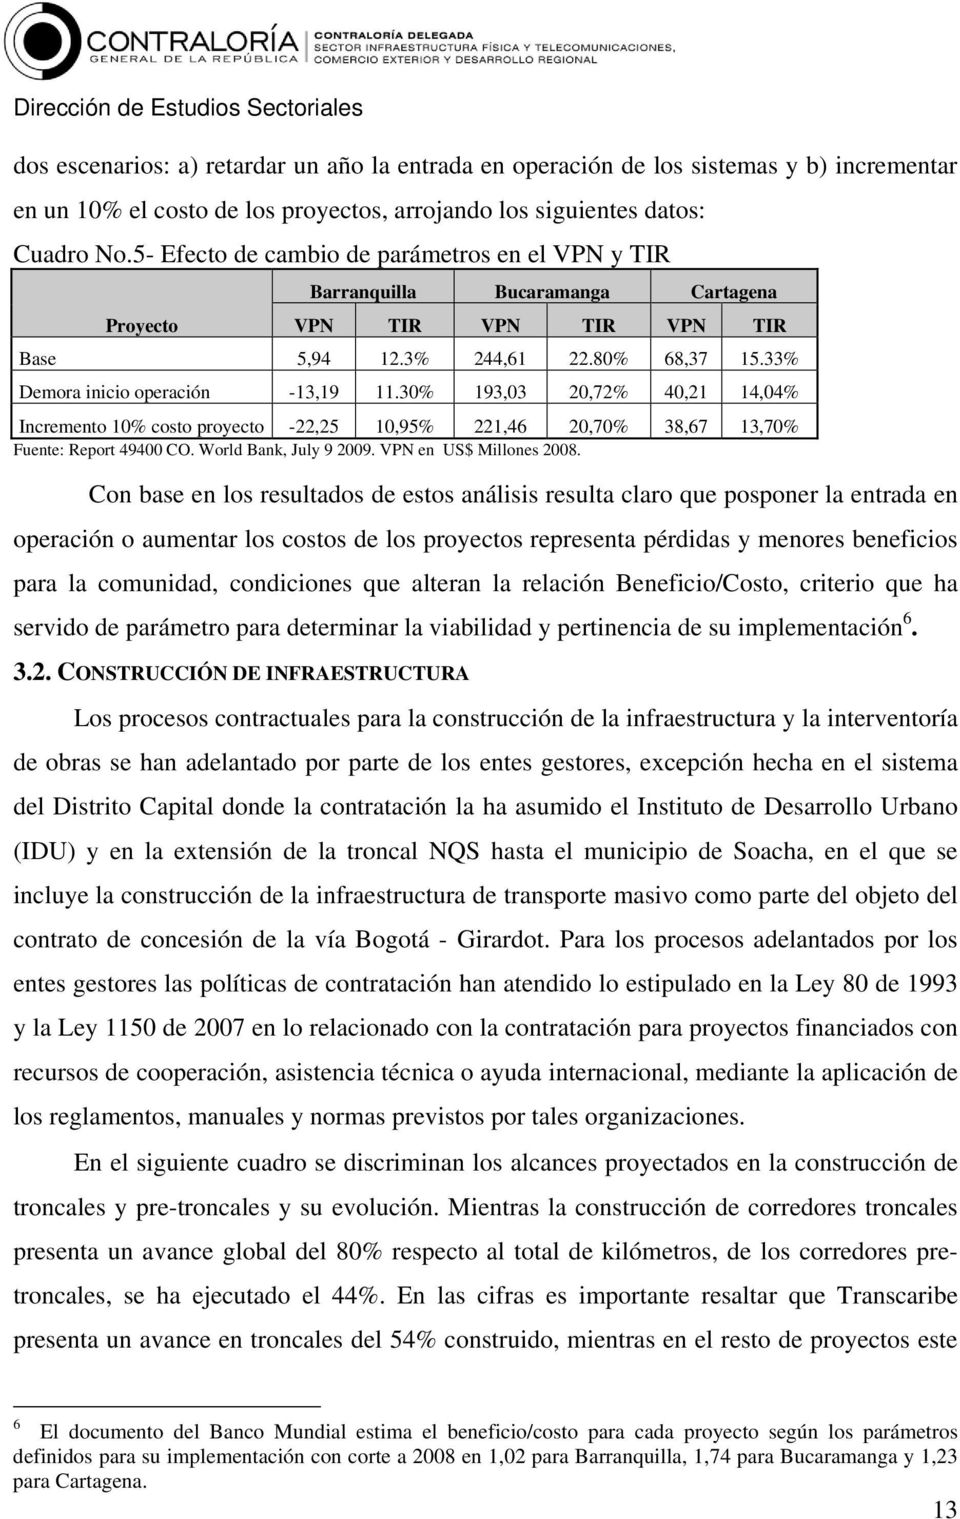 30% 193,03 20,72% 40,21 14,04% Incremento 10% costo proyecto -22,25 10,95% 221,46 20,70% 38,67 13,70% Fuente: Report 49400 CO. World Bank, July 9 2009. VPN en US$ Millones 2008.